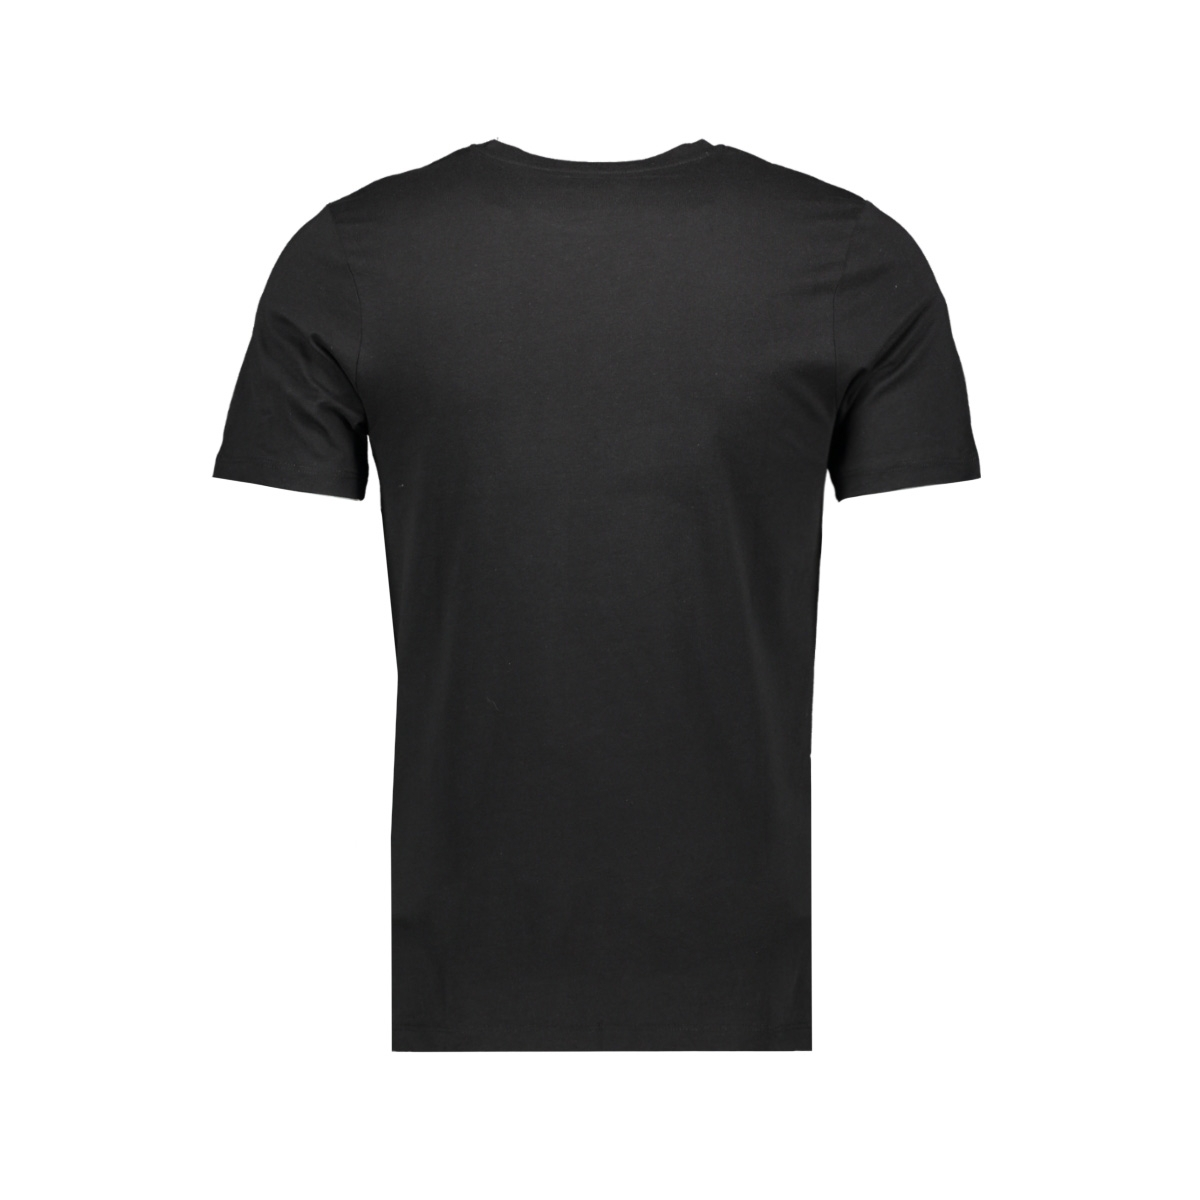 jcobooster tee ss crew neck june 19 12155989 jack & jones t-shirt black